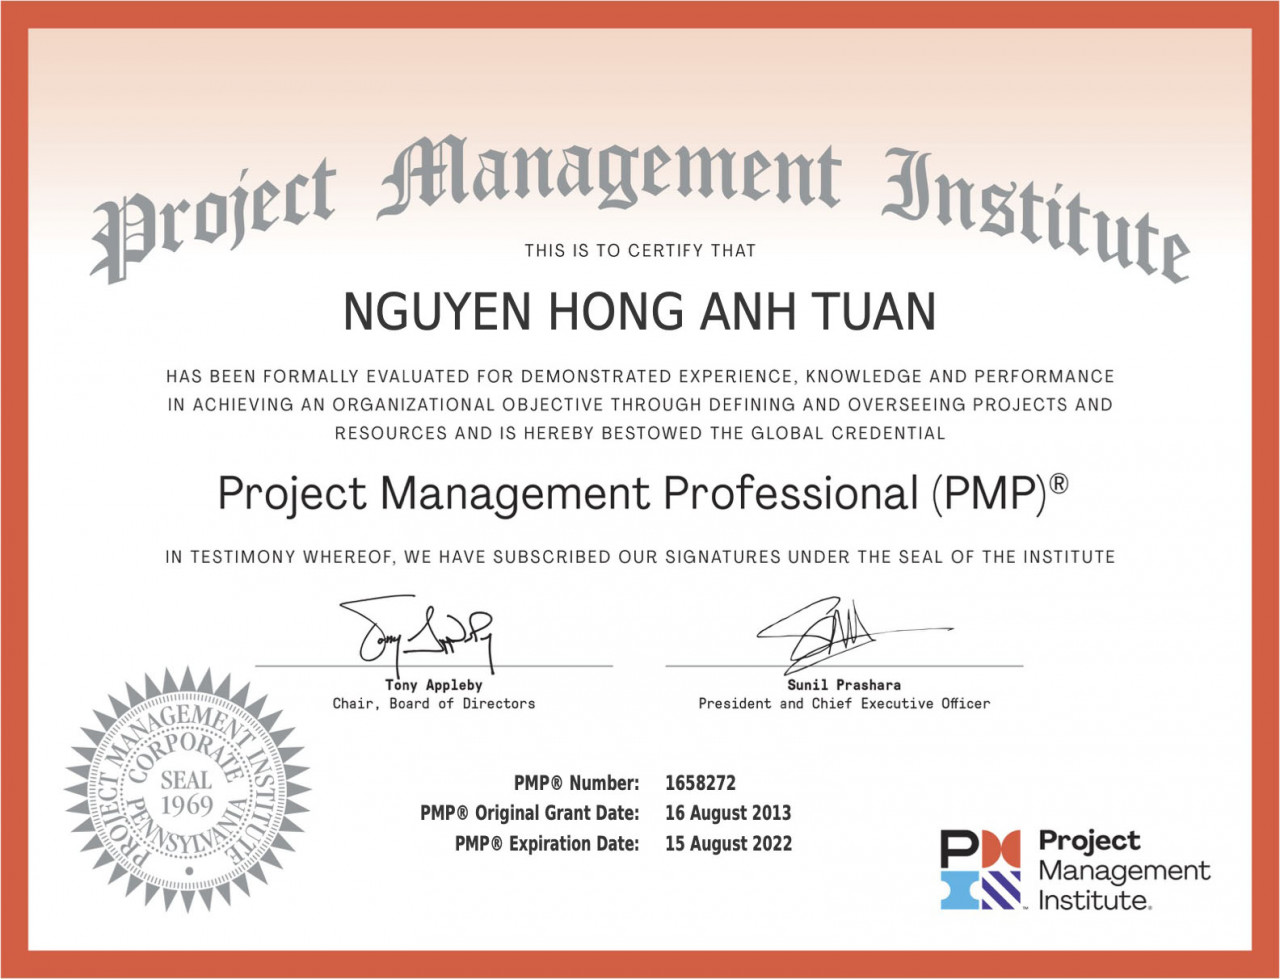 Nguyen Hong Anh Tuan Project Management Body of Knowledge Certificate